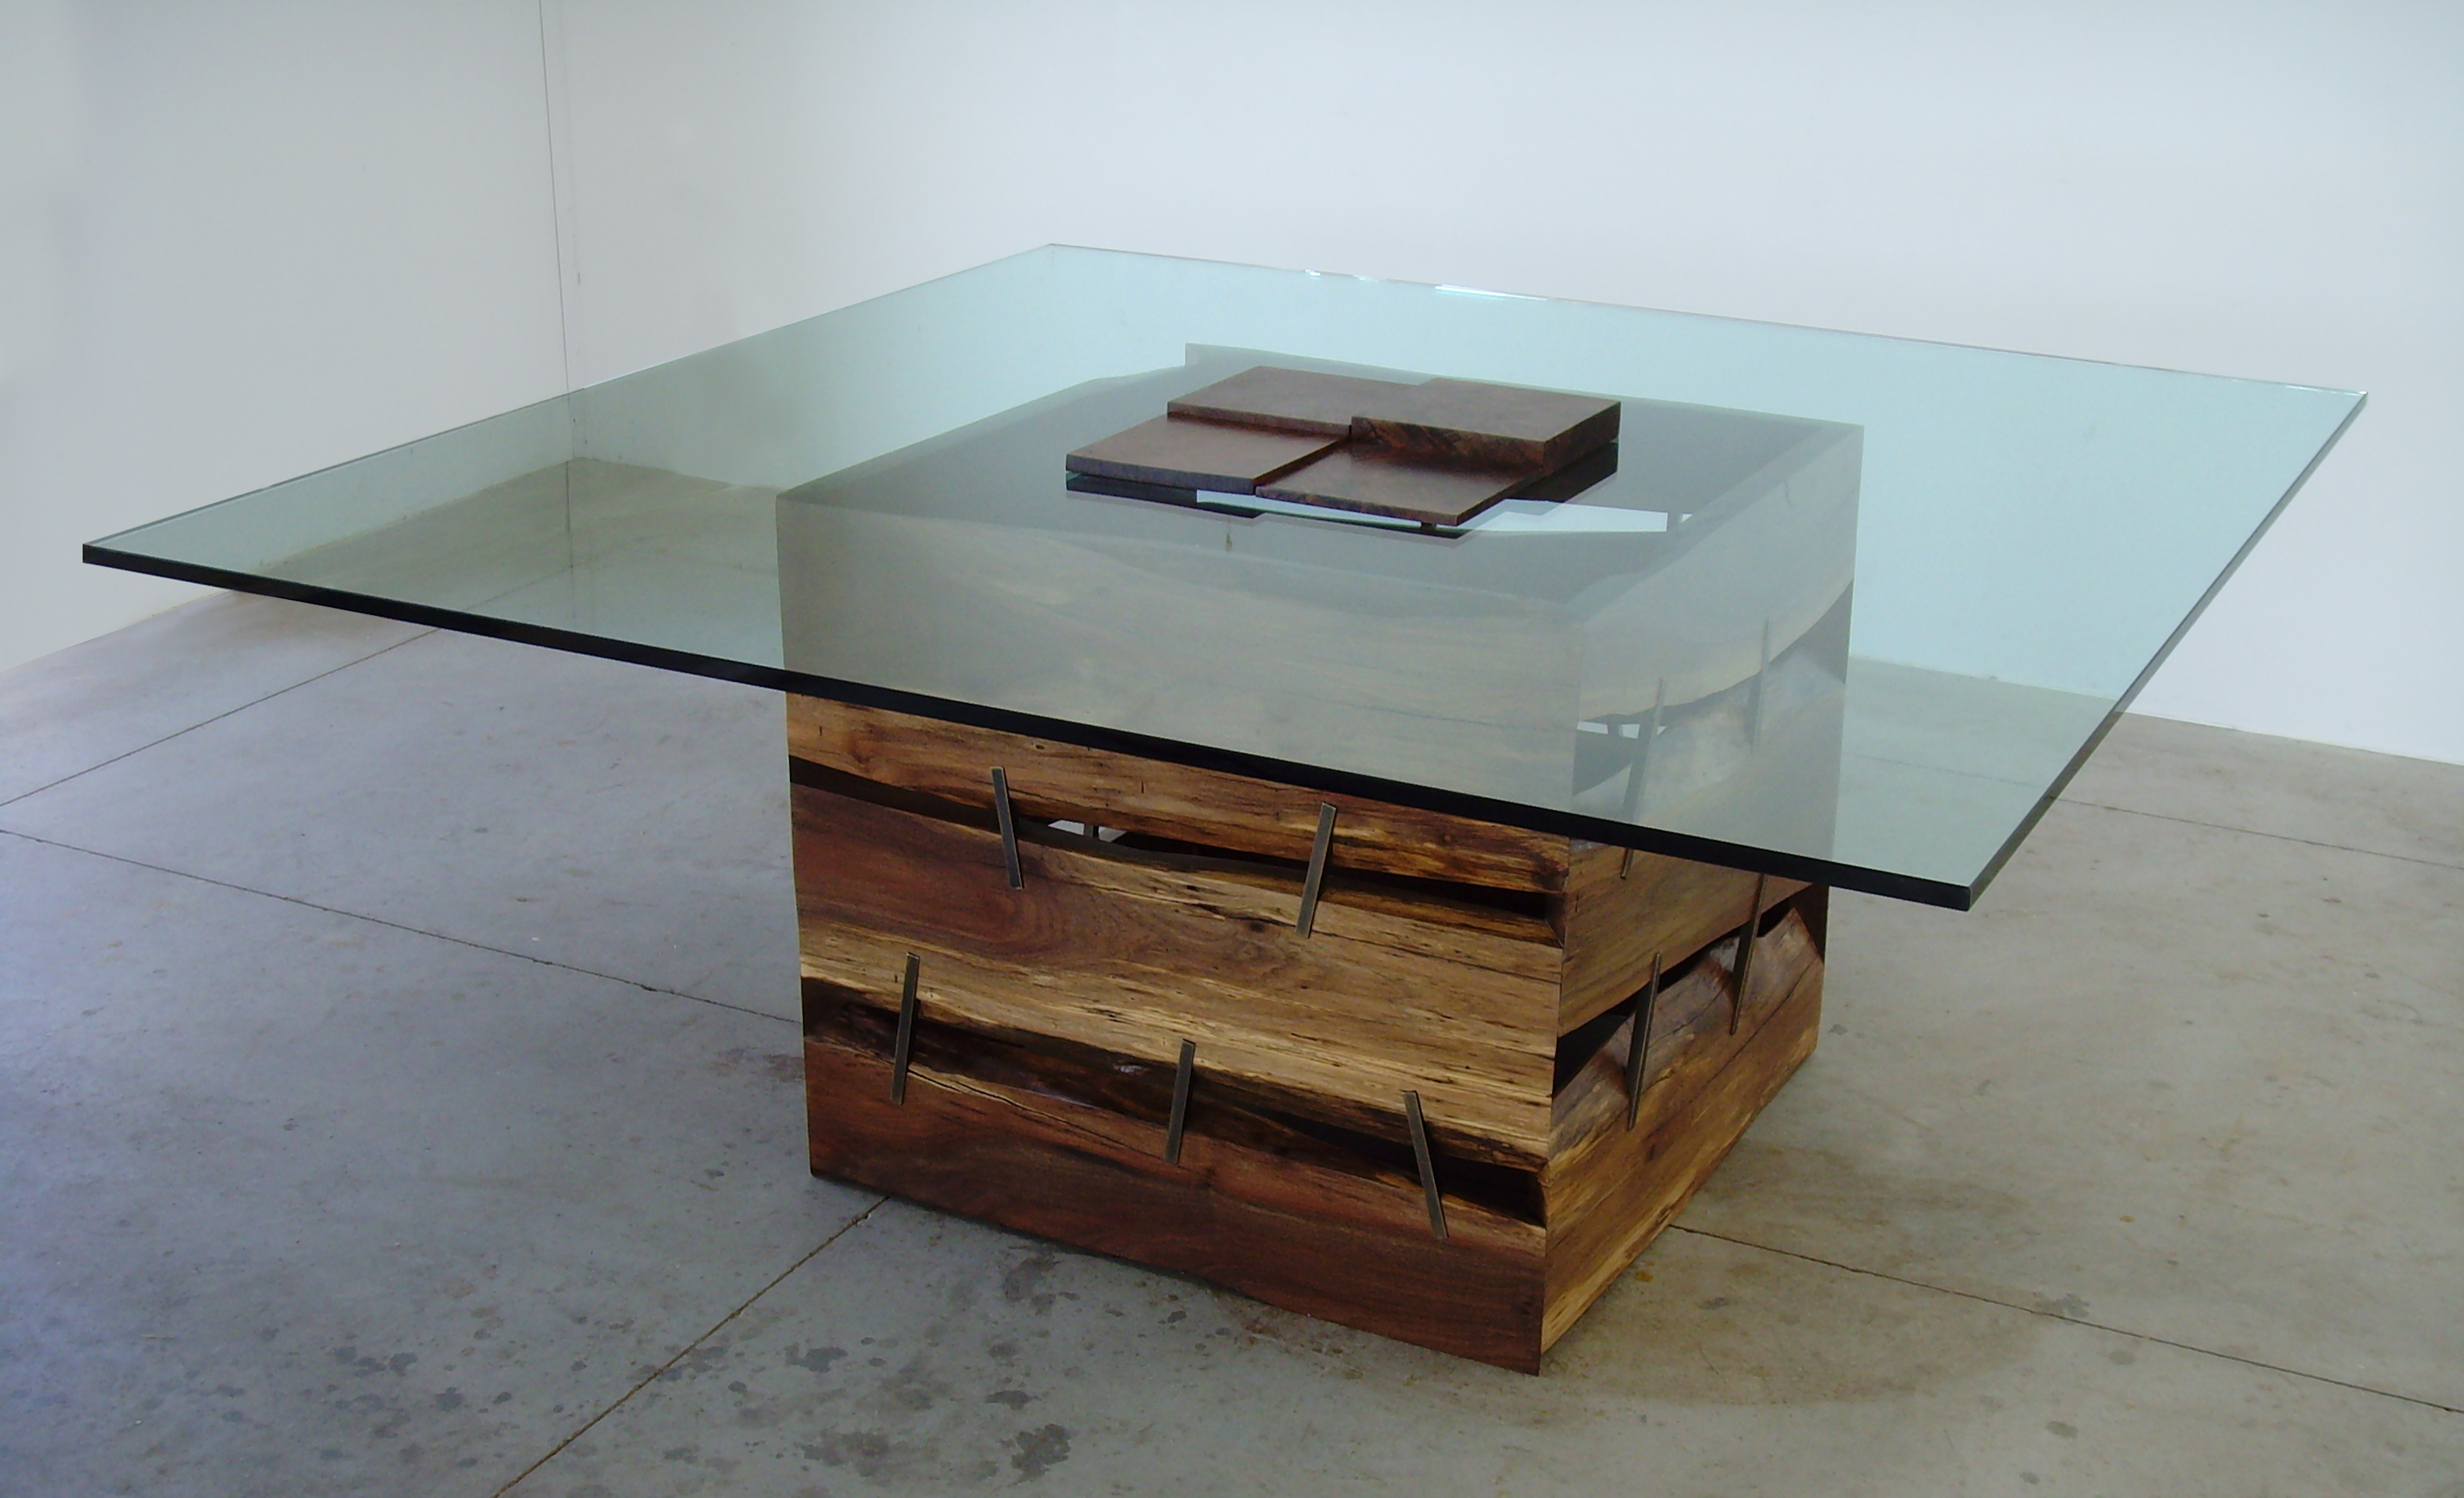 table recycled materials. Desert Living Today Features Modern Design Picks From HGTV Star Finalist, Celebrity Interior Designer Cathy Hobbs, ASID,LEED AP, NYC Home Stager/ Table Recycled Materials M